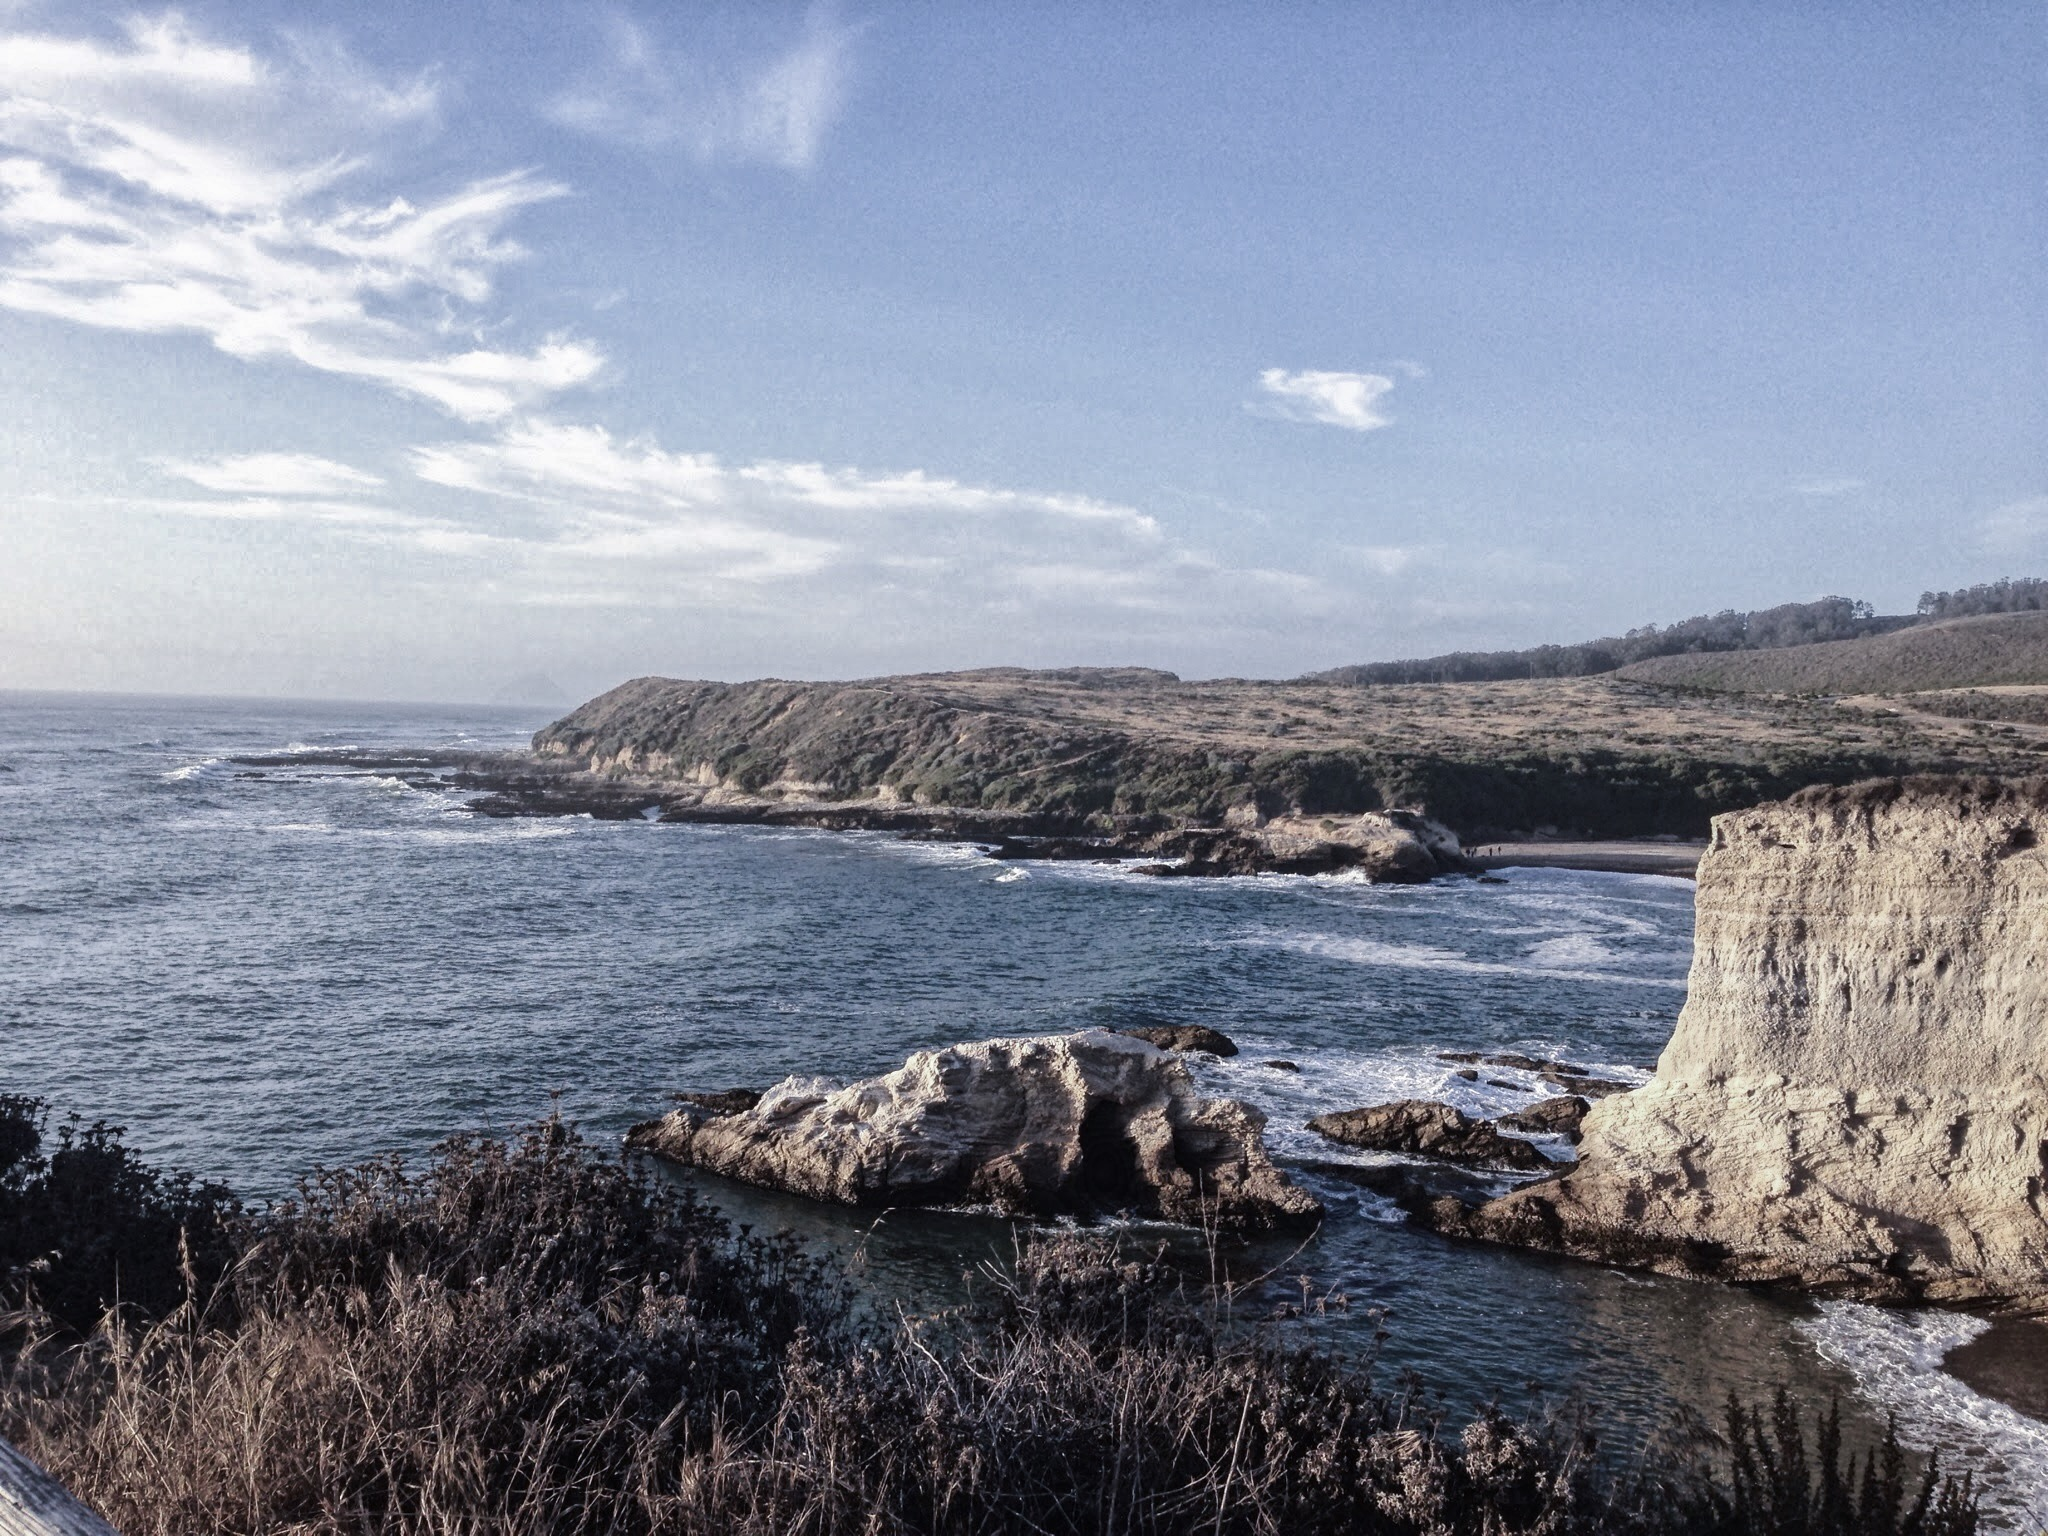 Montaña de Oro is easily my favorite location in San Luis Obispo County.